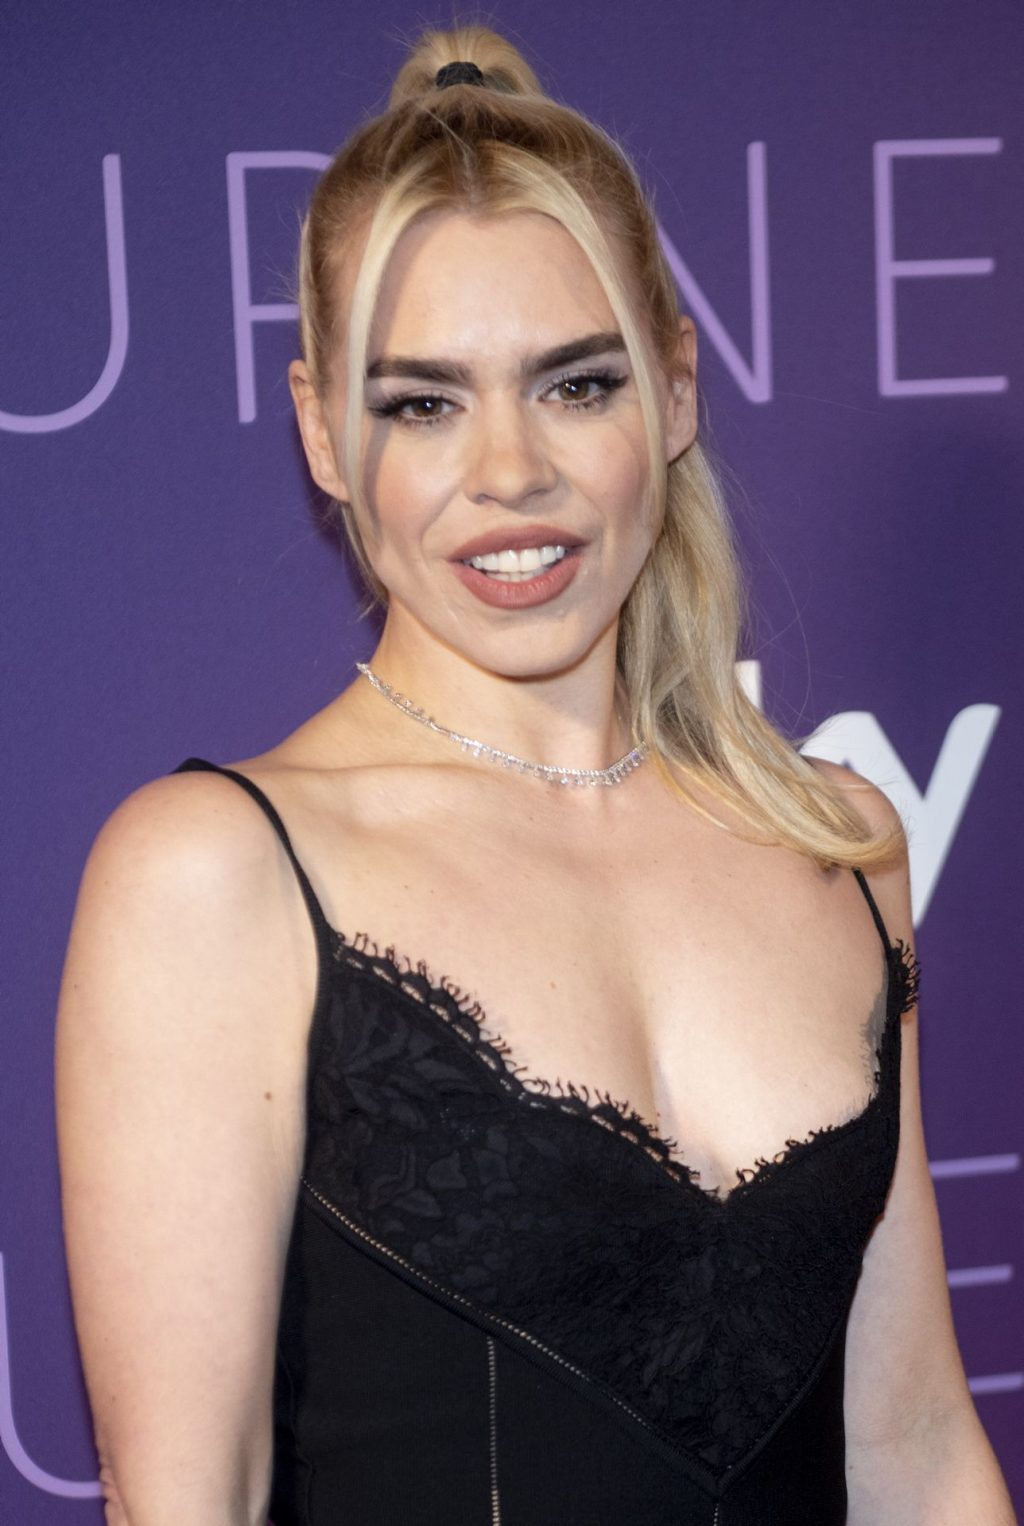 Billie Piper Sexy The Fappening Blog 33 1024x1526 - Billie Piper Smiles at the Sky Up Next Event (67 Photos)